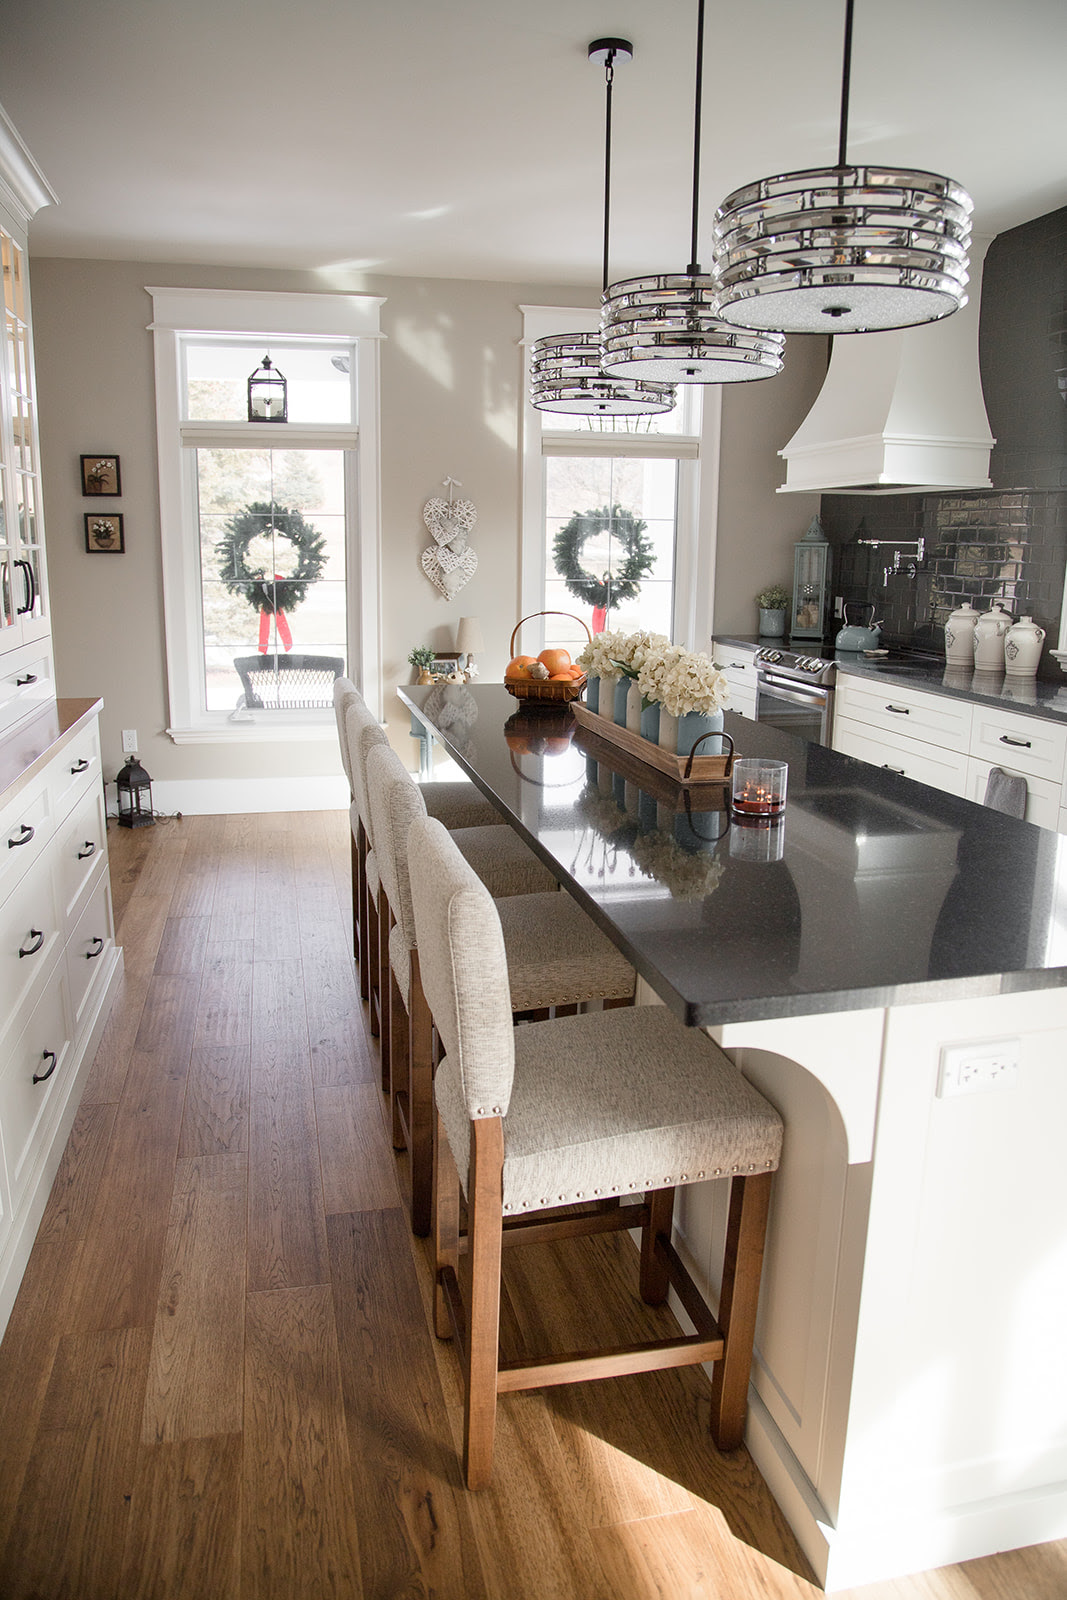 Kitchens - Redwood Cabinetry